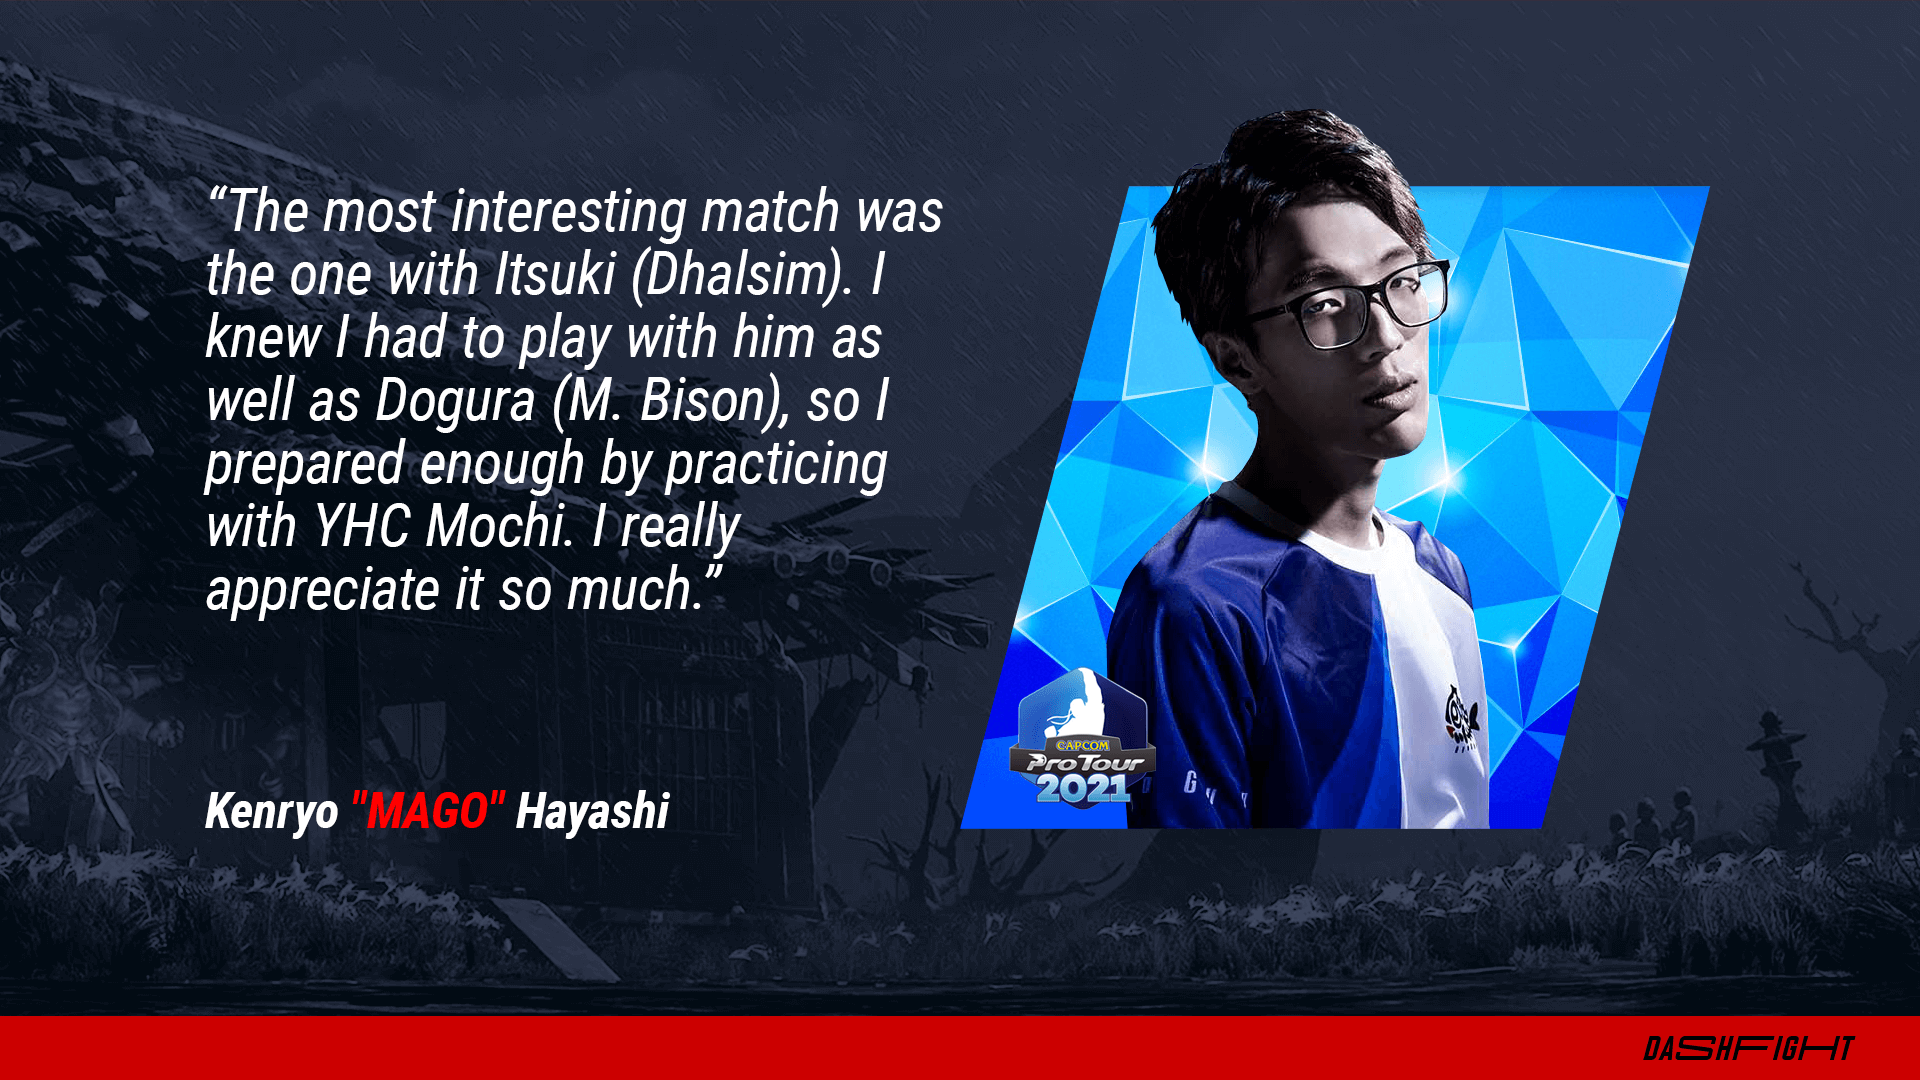 Street Fighter esports - DeashFight interview with Mago - quote image